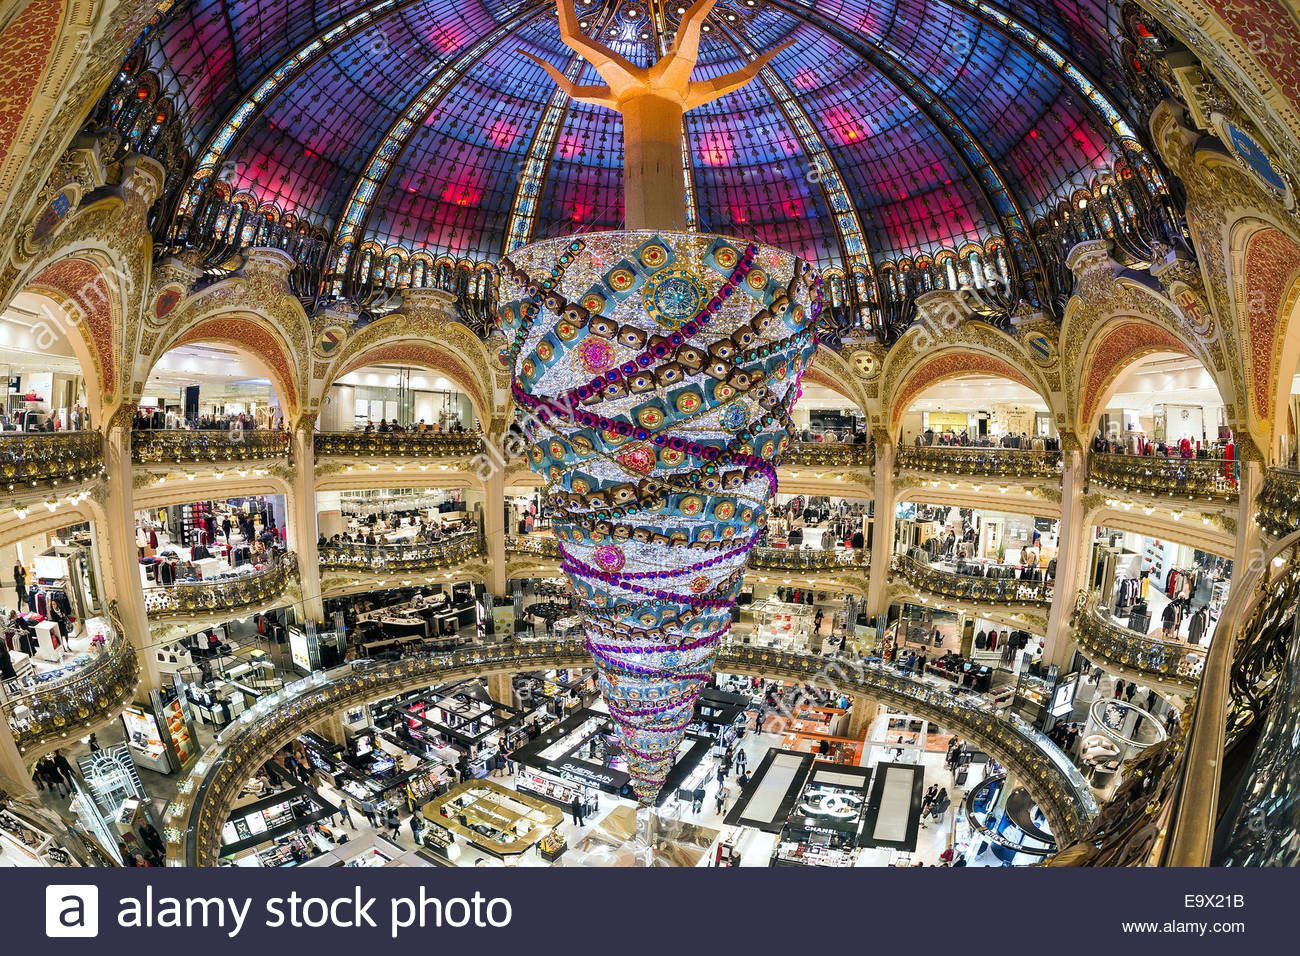 paris-galeries-lafayette-2014-christmas-tree-E9X21B.jpg